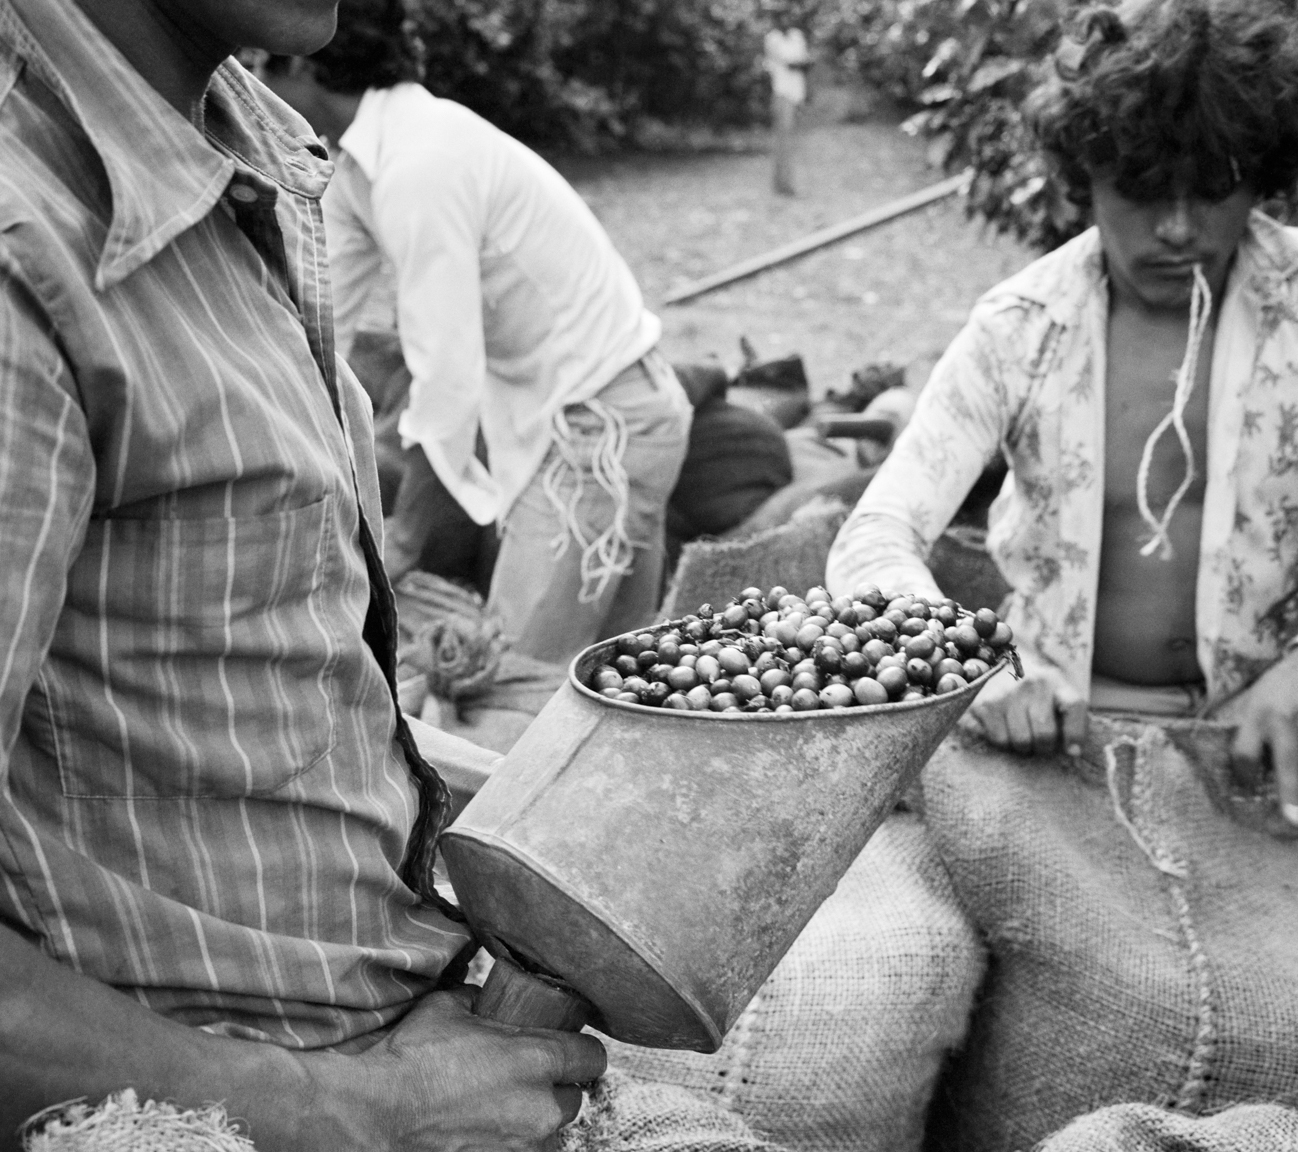 Salvadoran men load bags of freshly picked coffee beans for export at a coffee finca October 1983 in Santa Tecla, El Salvador.